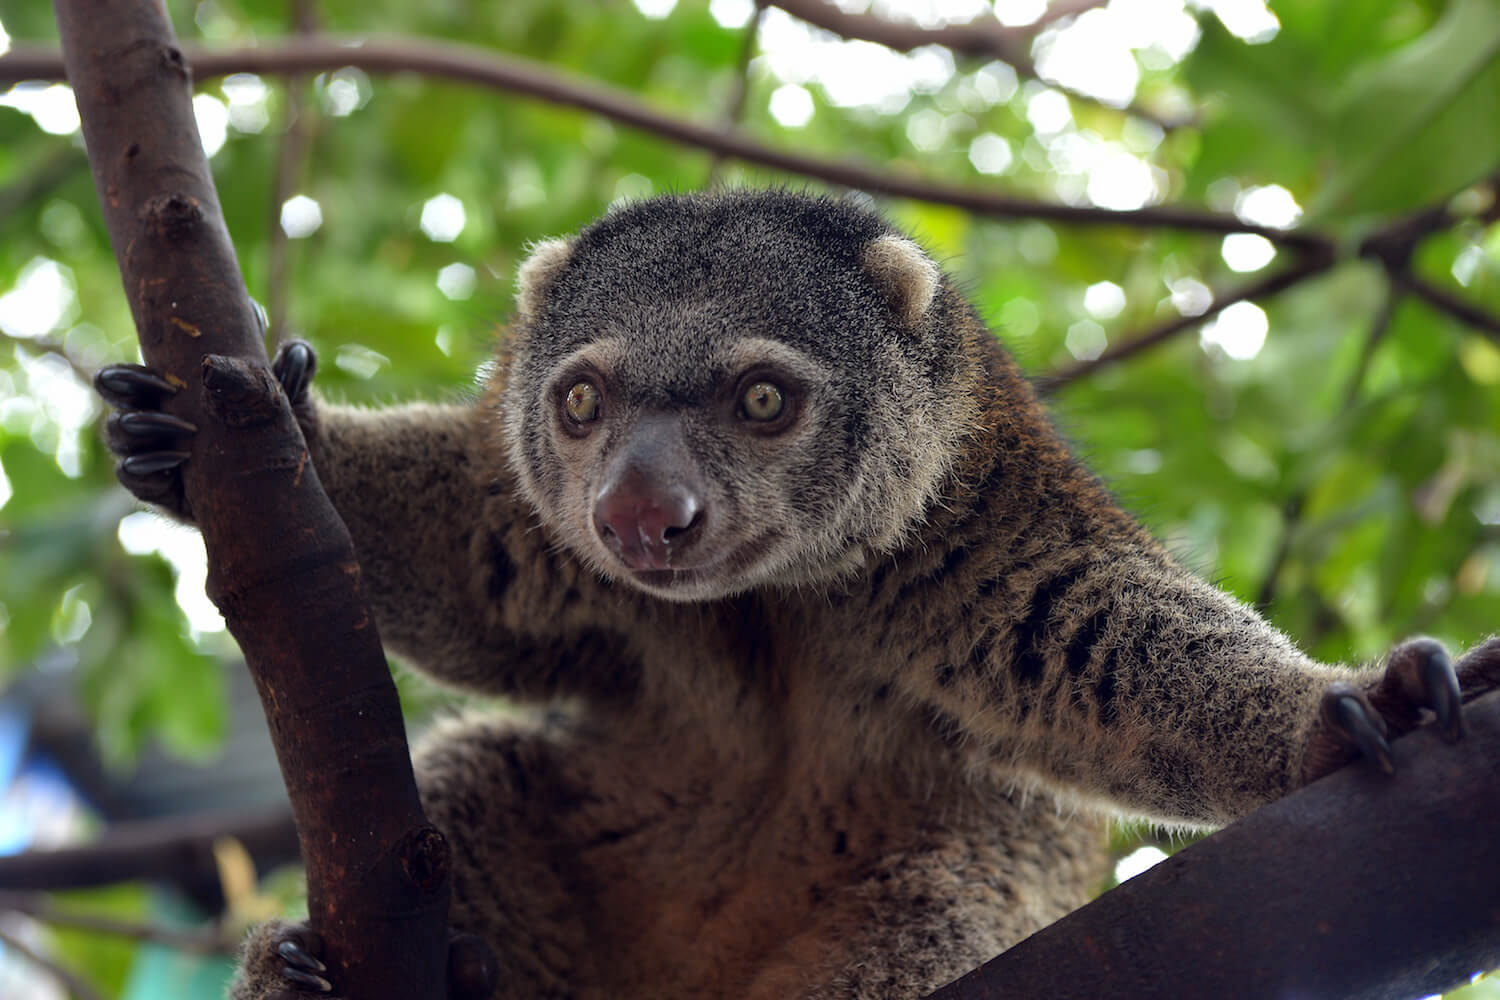 Close-up of cuscus in tree.